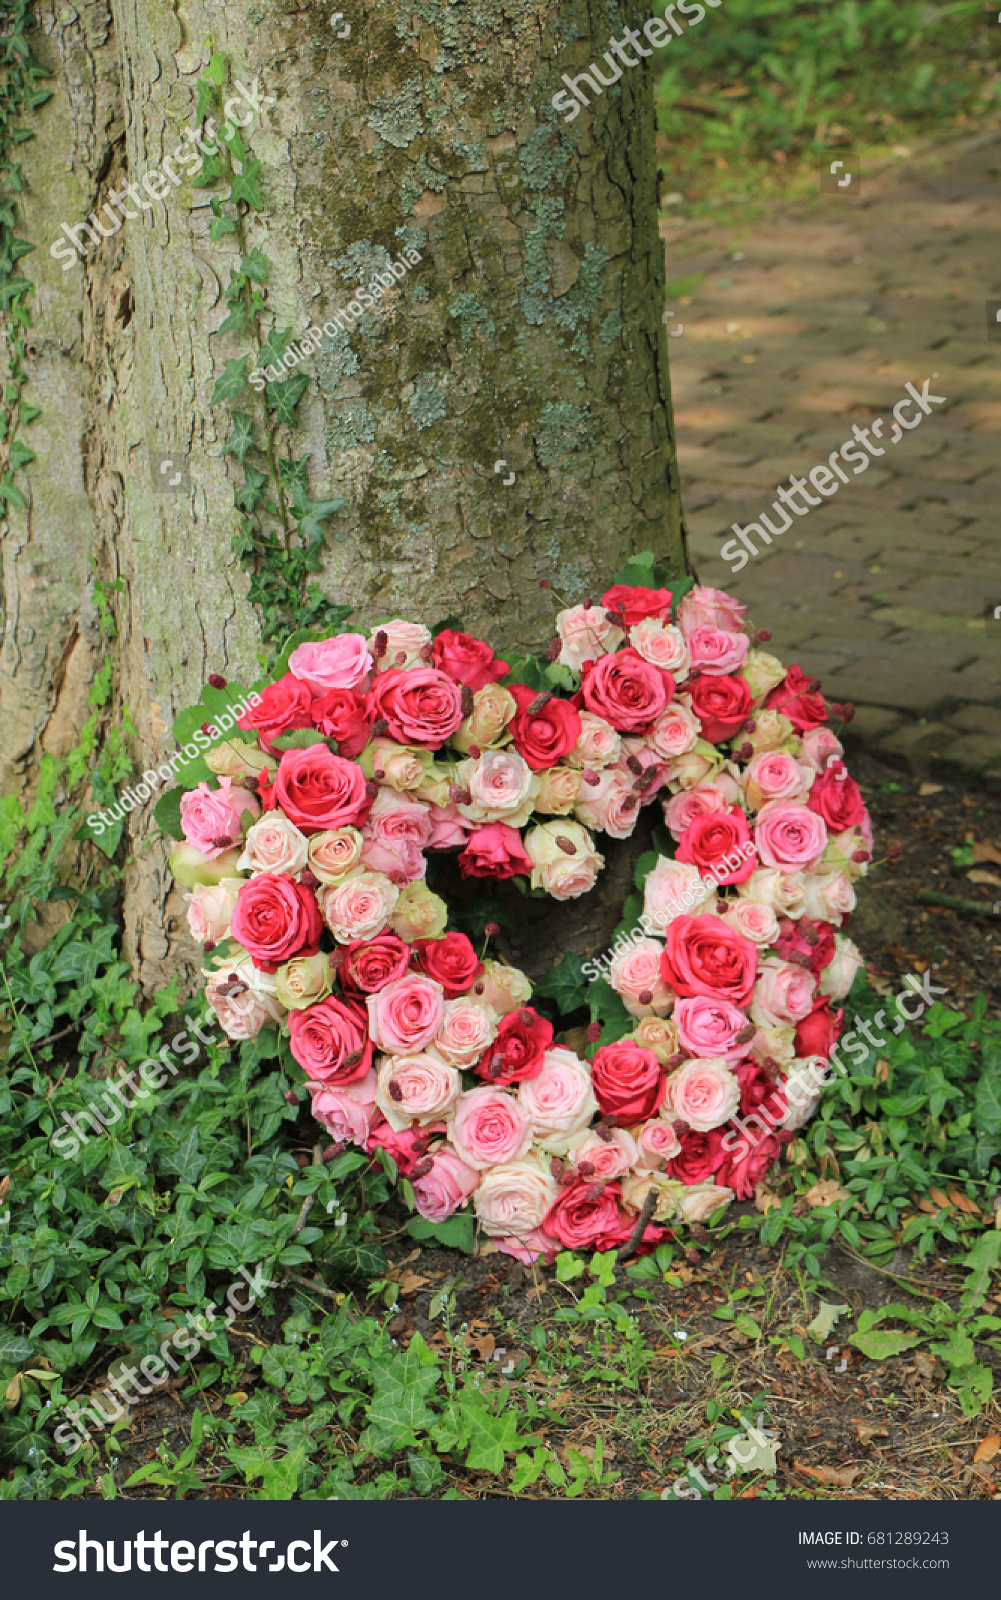 Heart shaped sympathy flowers funeral flowers stock photo edit now heart shaped sympathy flowers or funeral flowers near a tree izmirmasajfo